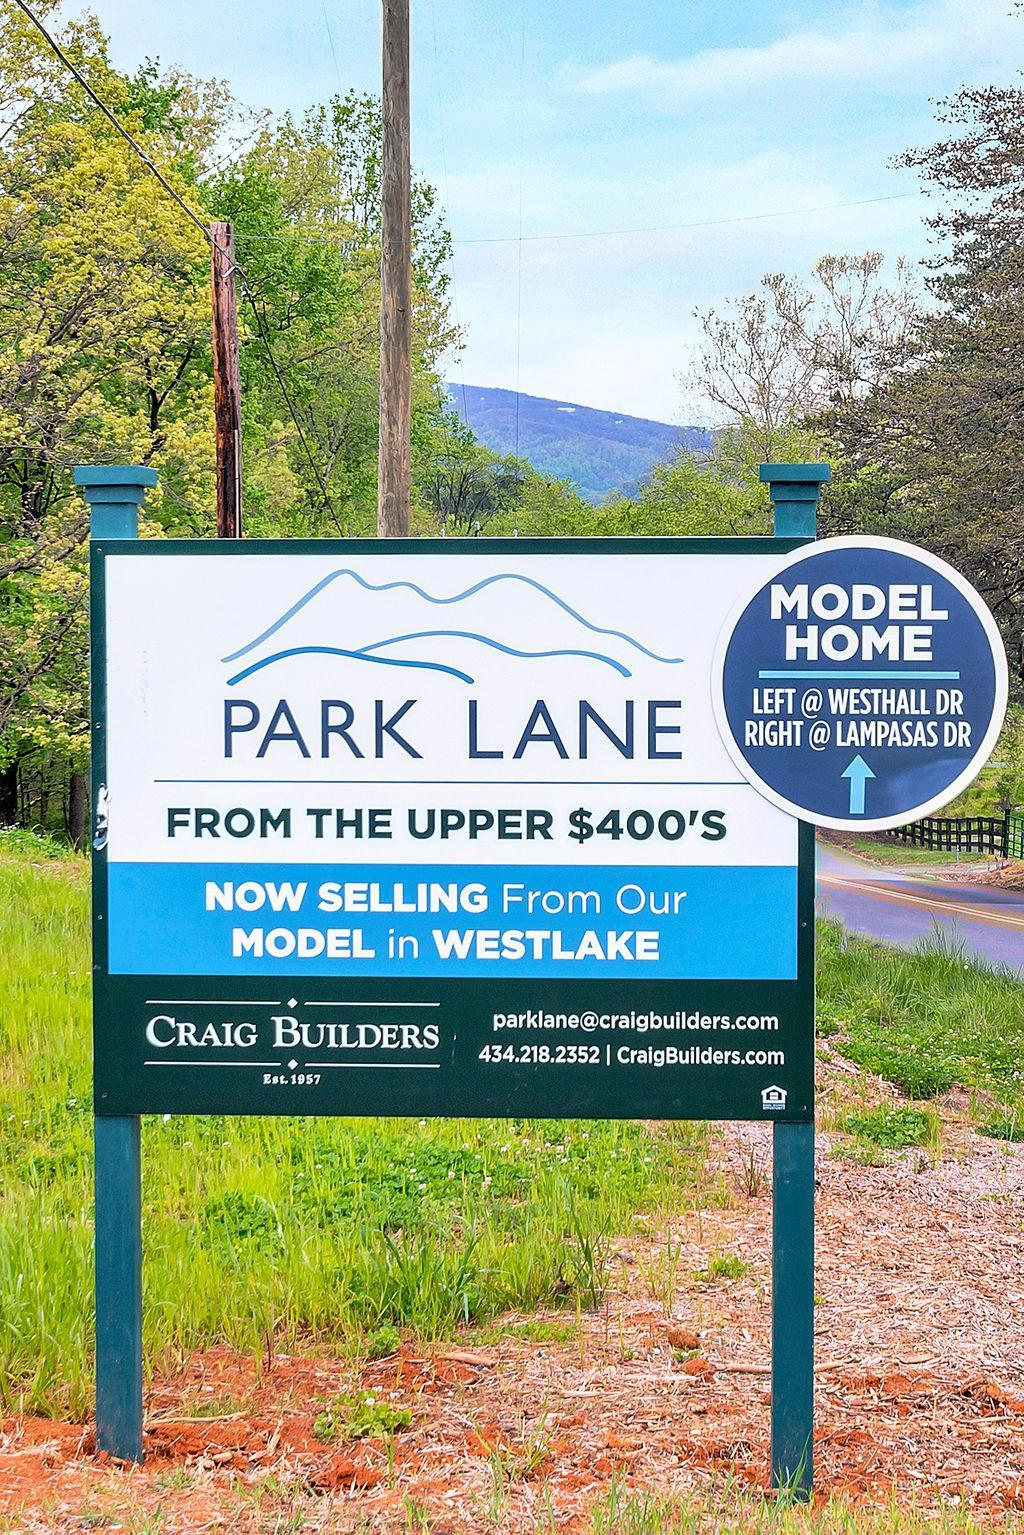 'Park Lane' by Craig Builders in Charlottesville